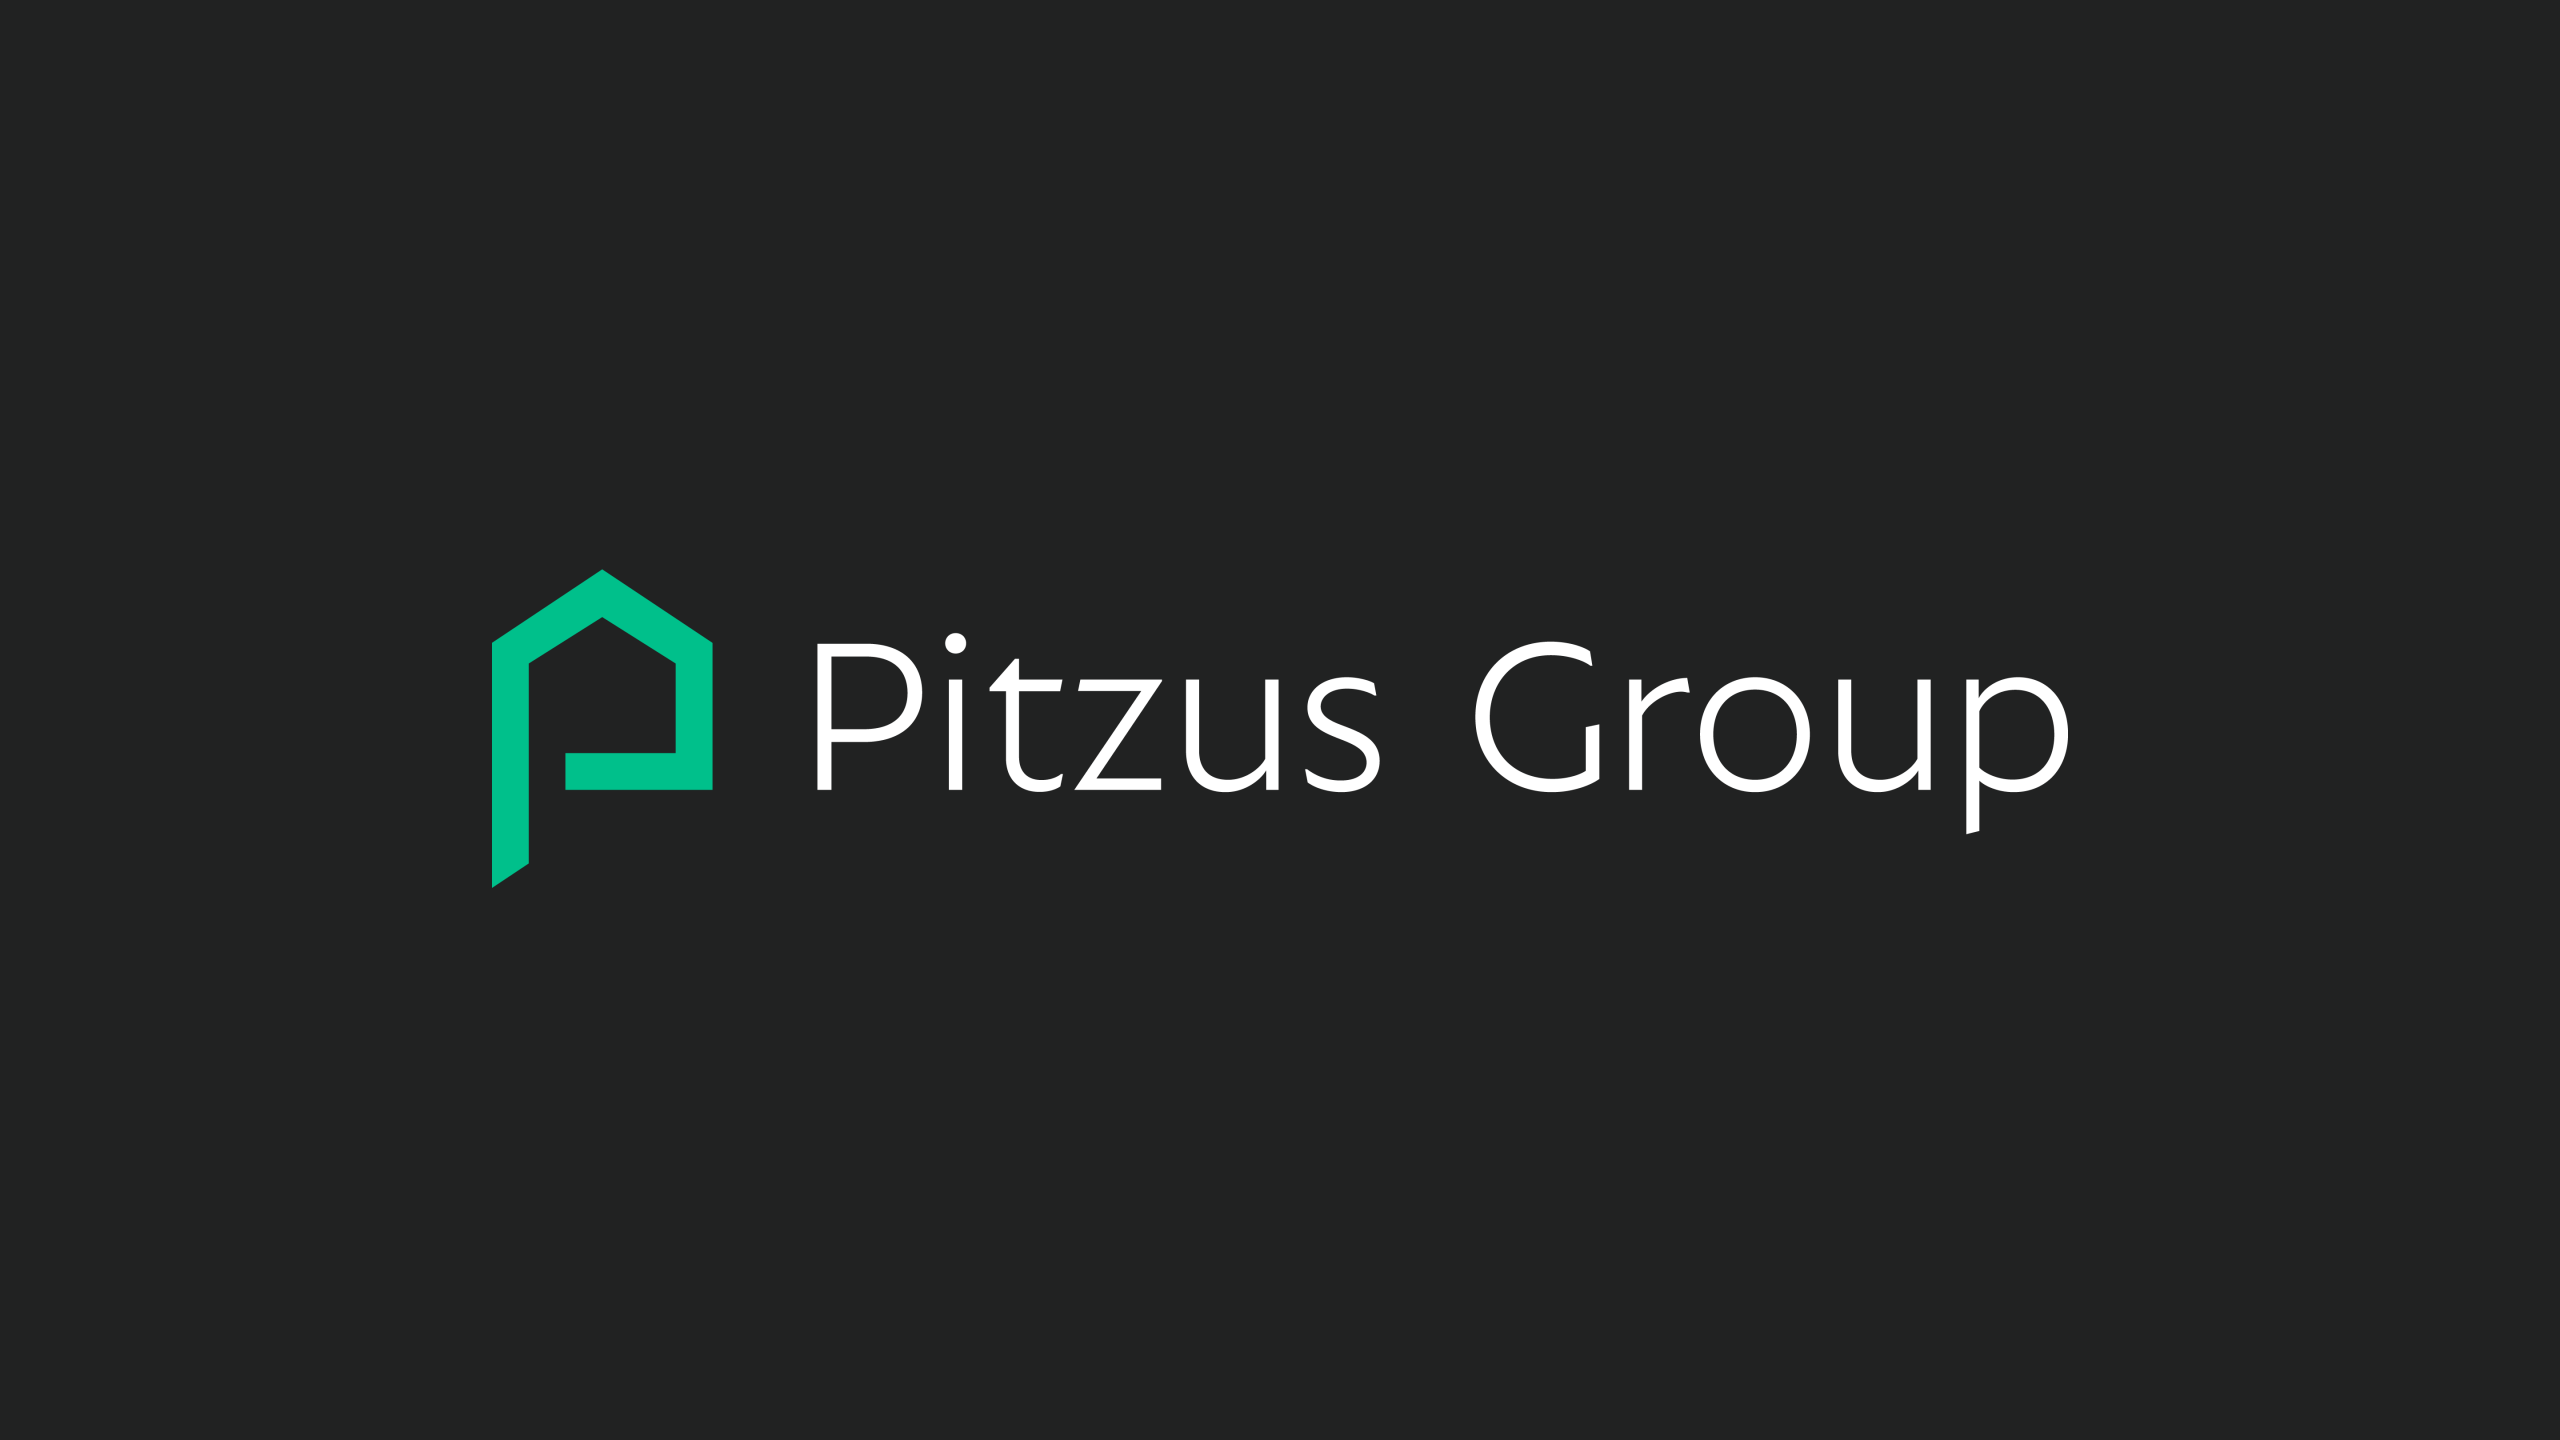 logo pitzus group